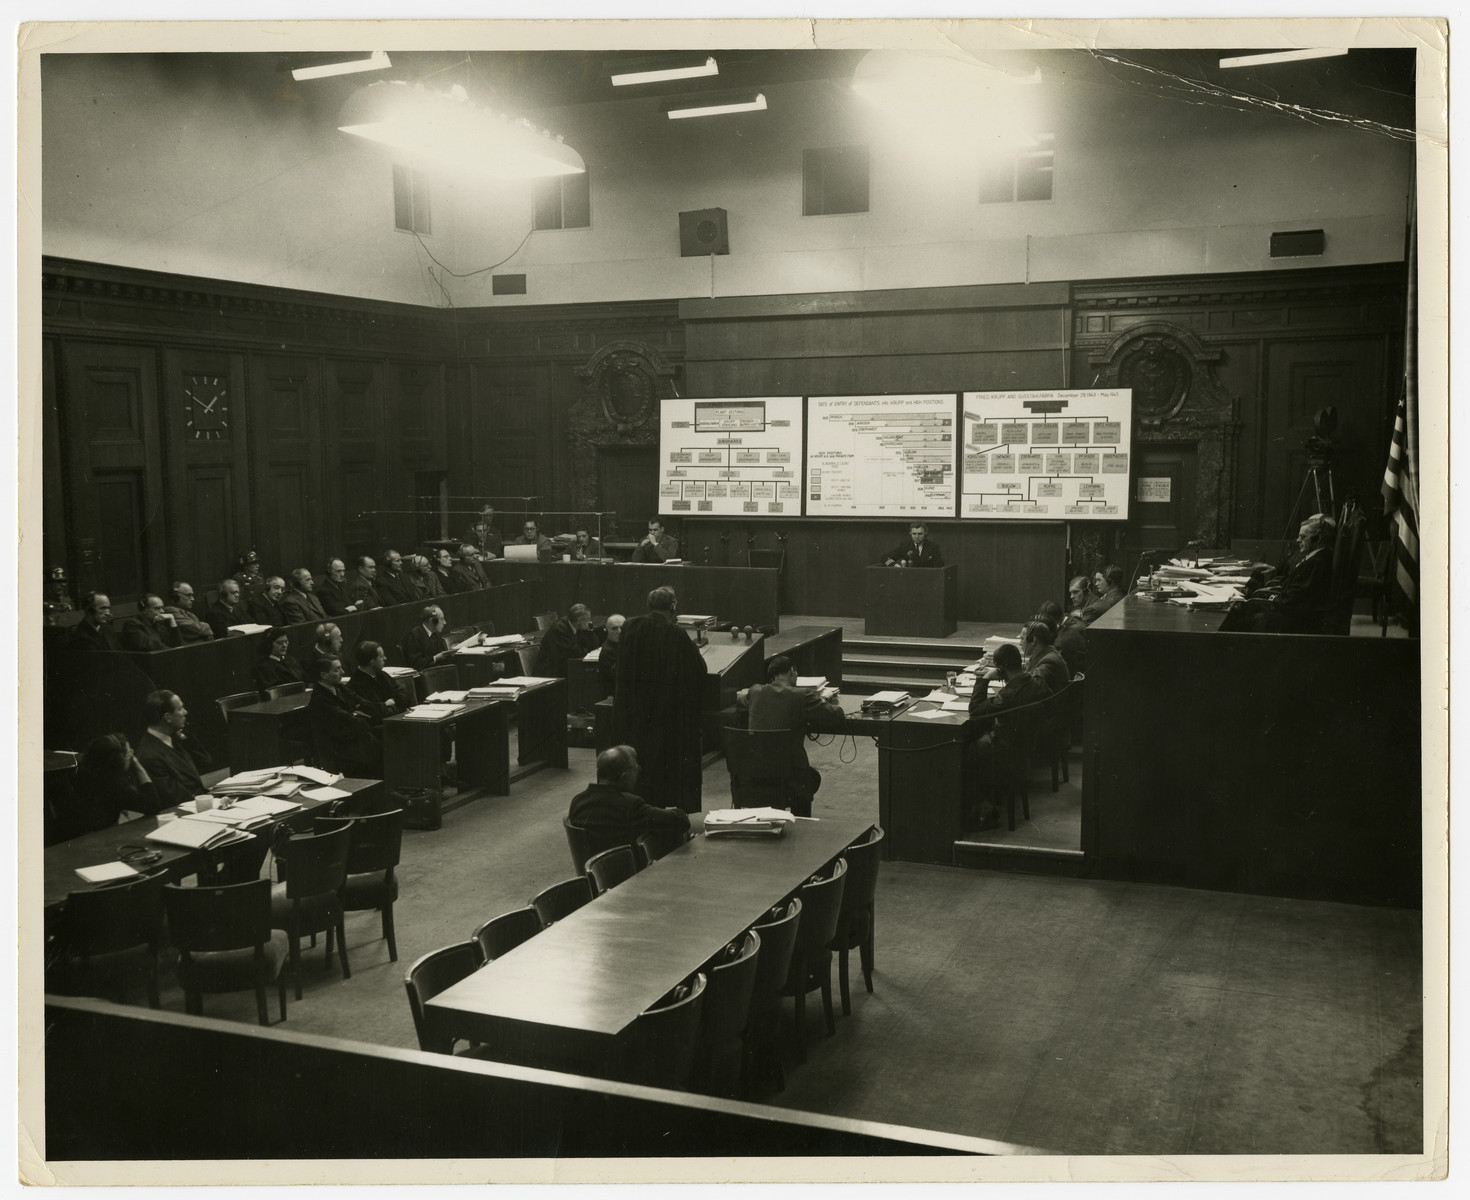 Courtroom view of the Krupp proceedings.  The defendants are seated on the right; the judges are seated on the right and a poster showing organizational structures is in the front.